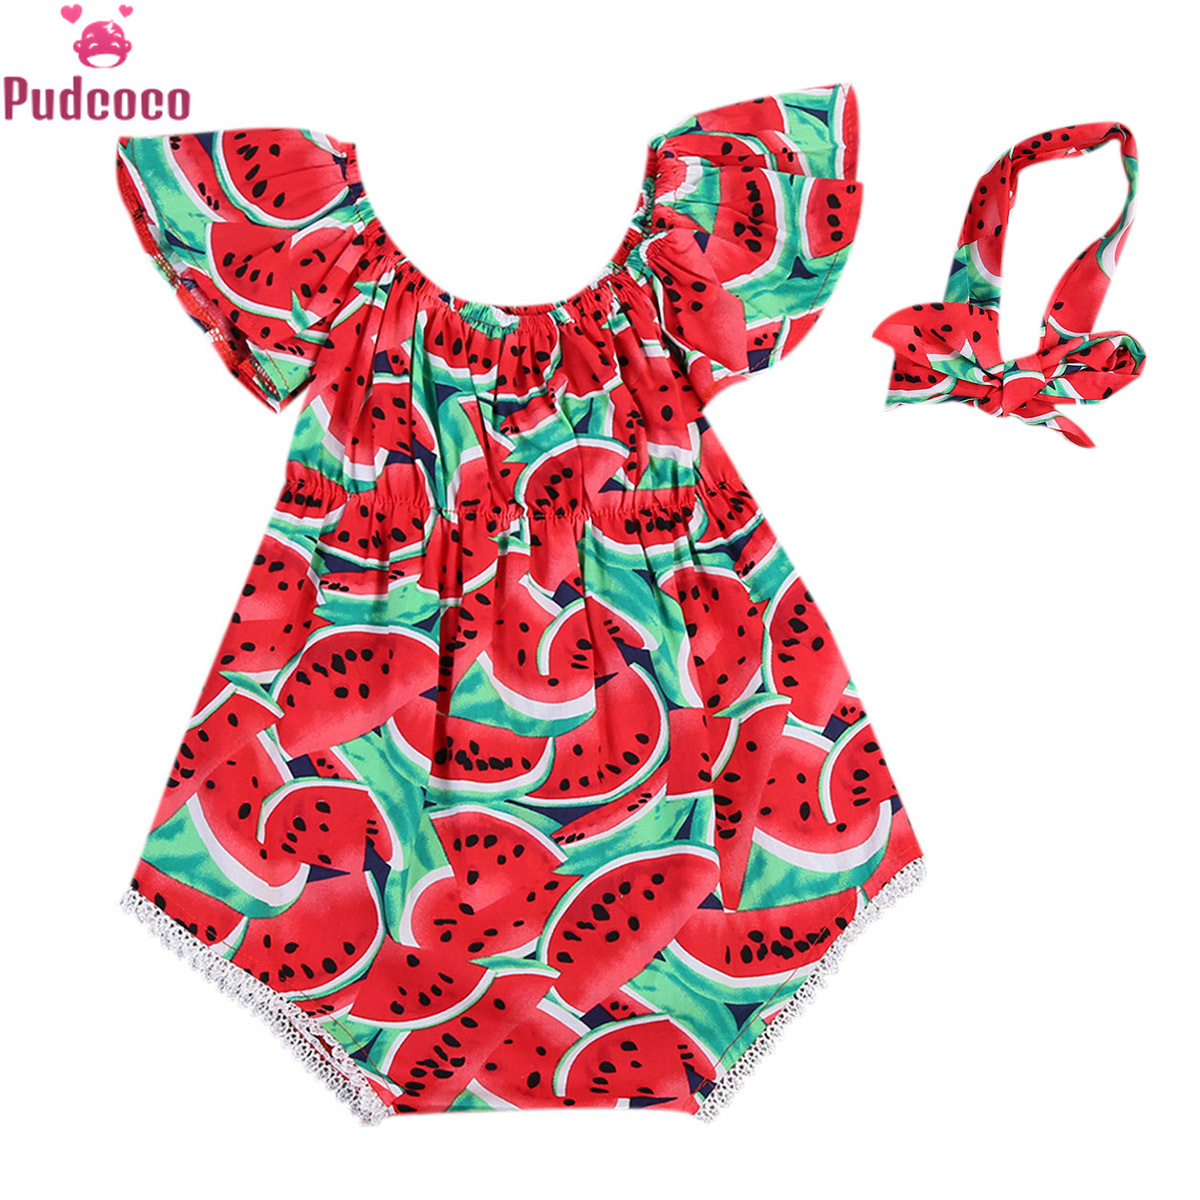 Newborn Kids Baby Girls Clothes Romper Printed Watermelon Bodysuit Jumpsuit With Headbands Bebe Outfits Playsuit